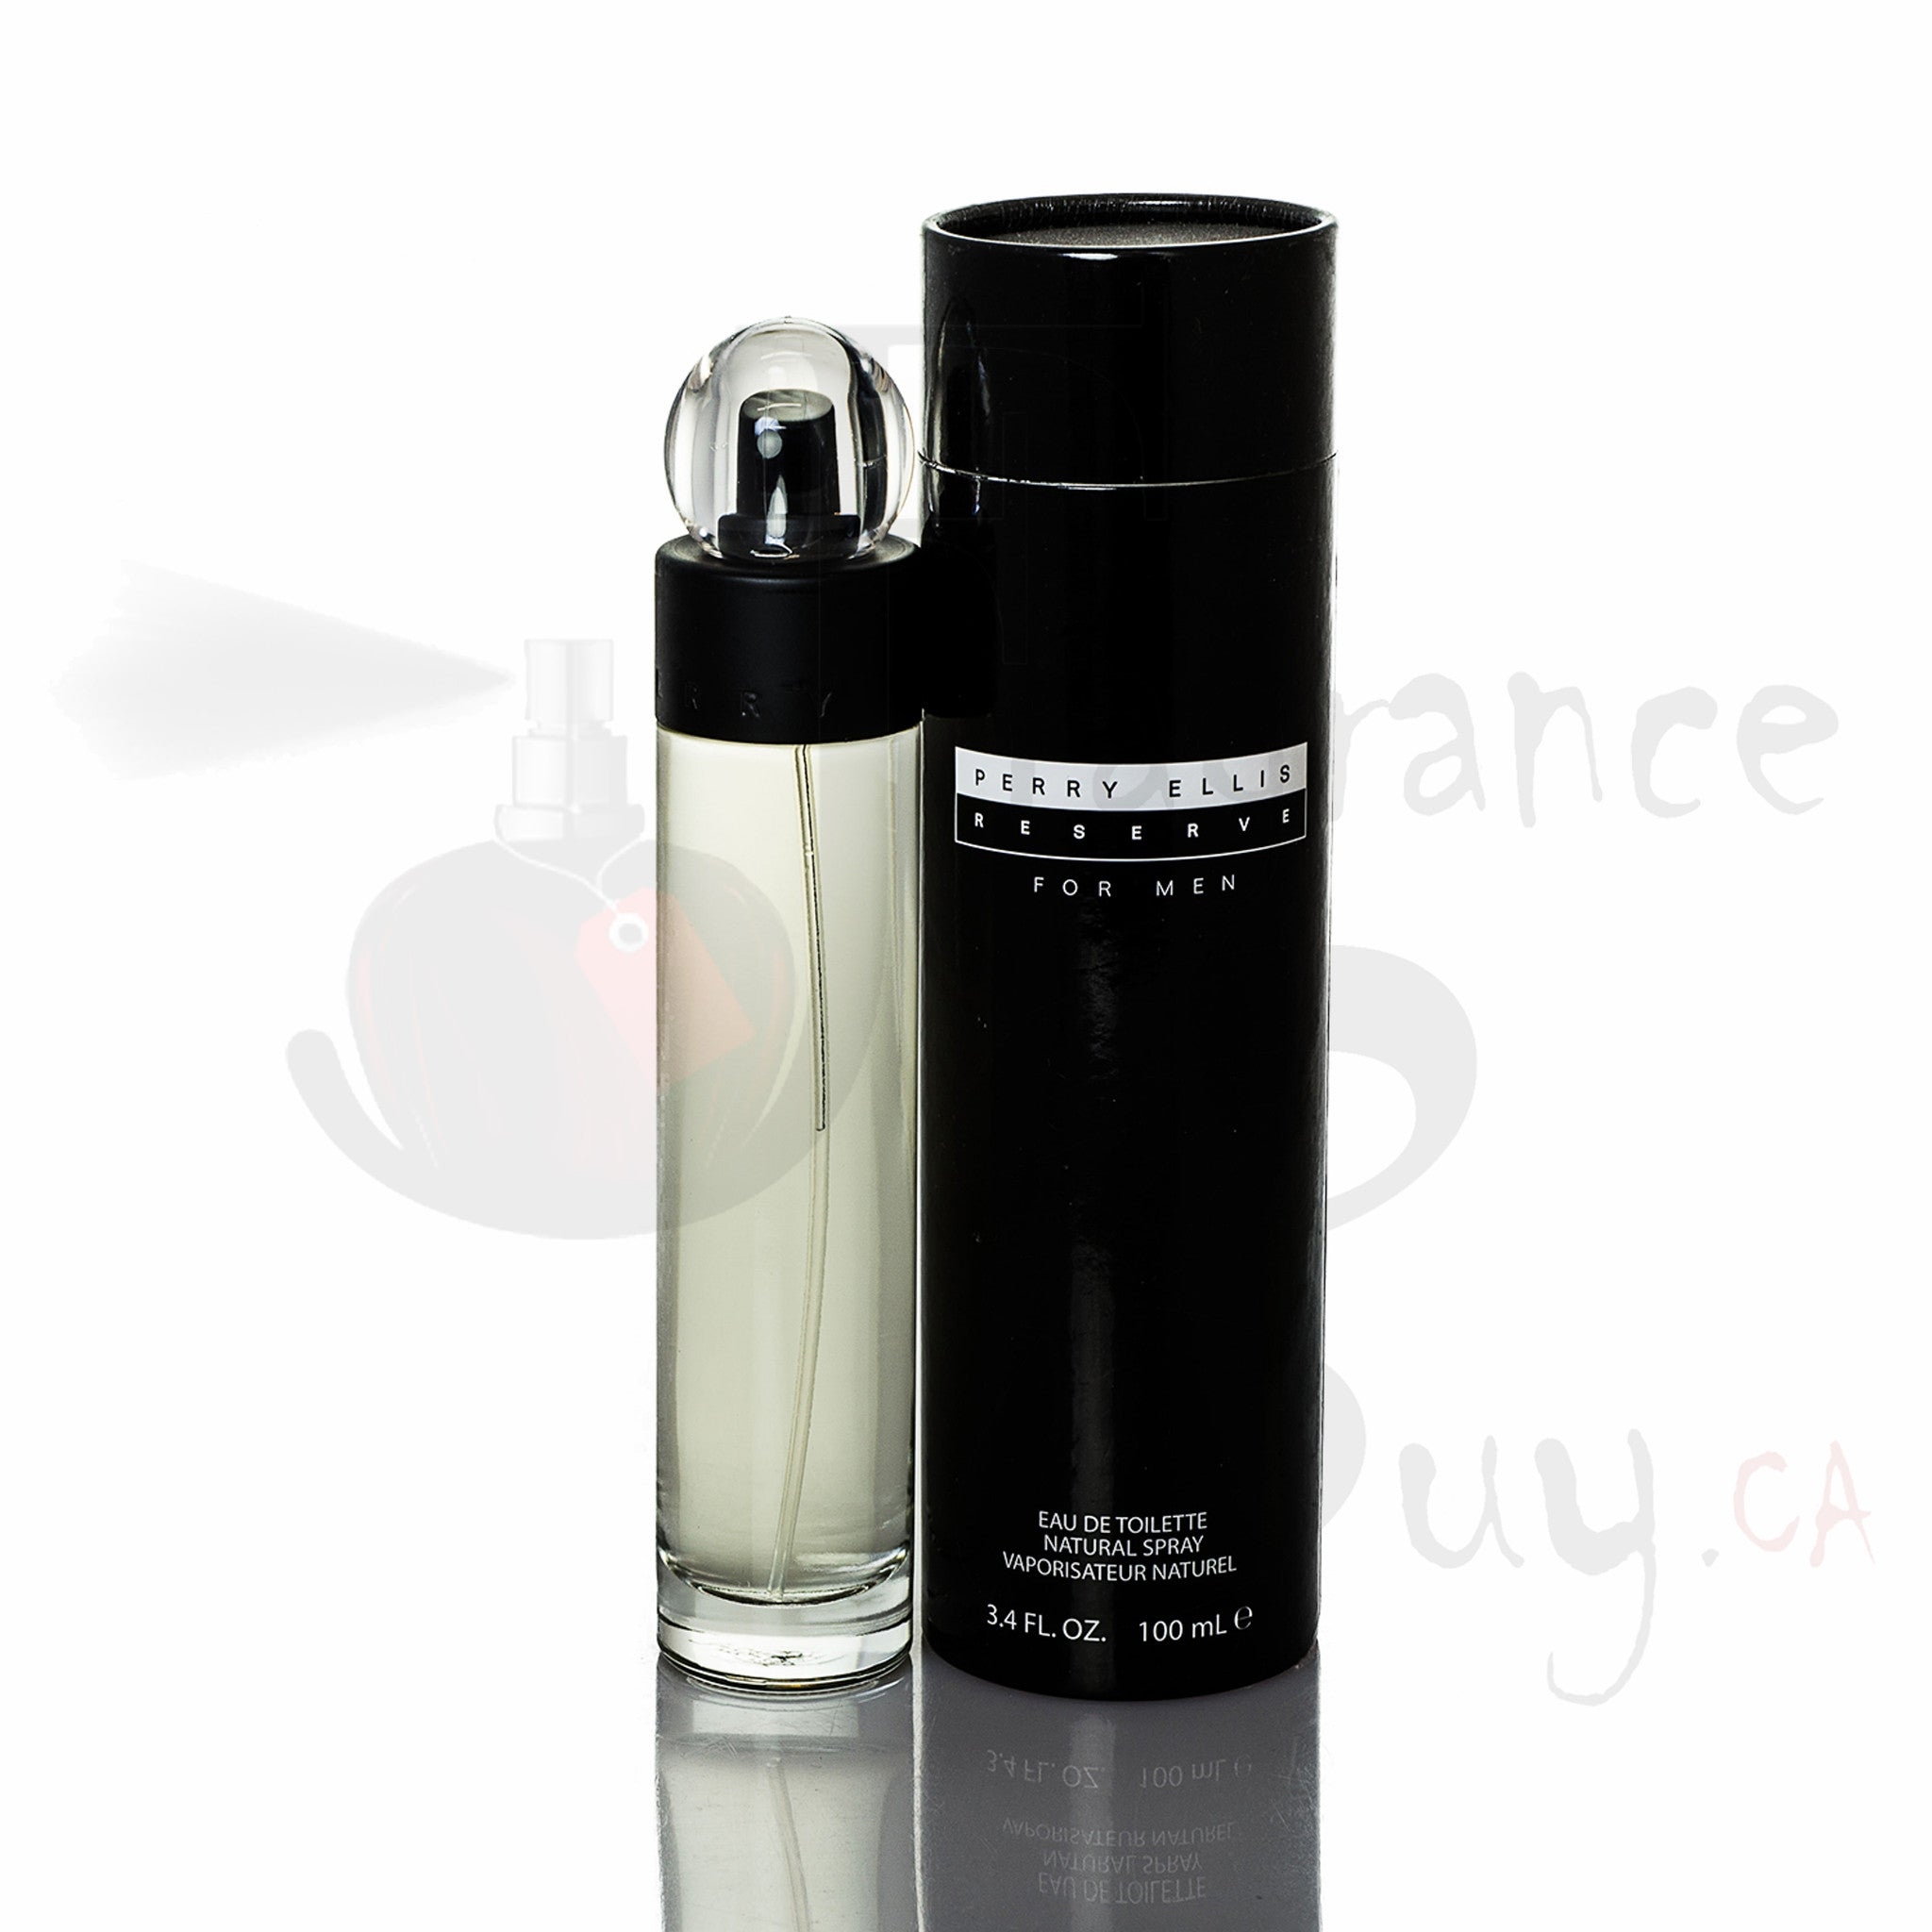 Perry Ellis 360 Reserve For Man